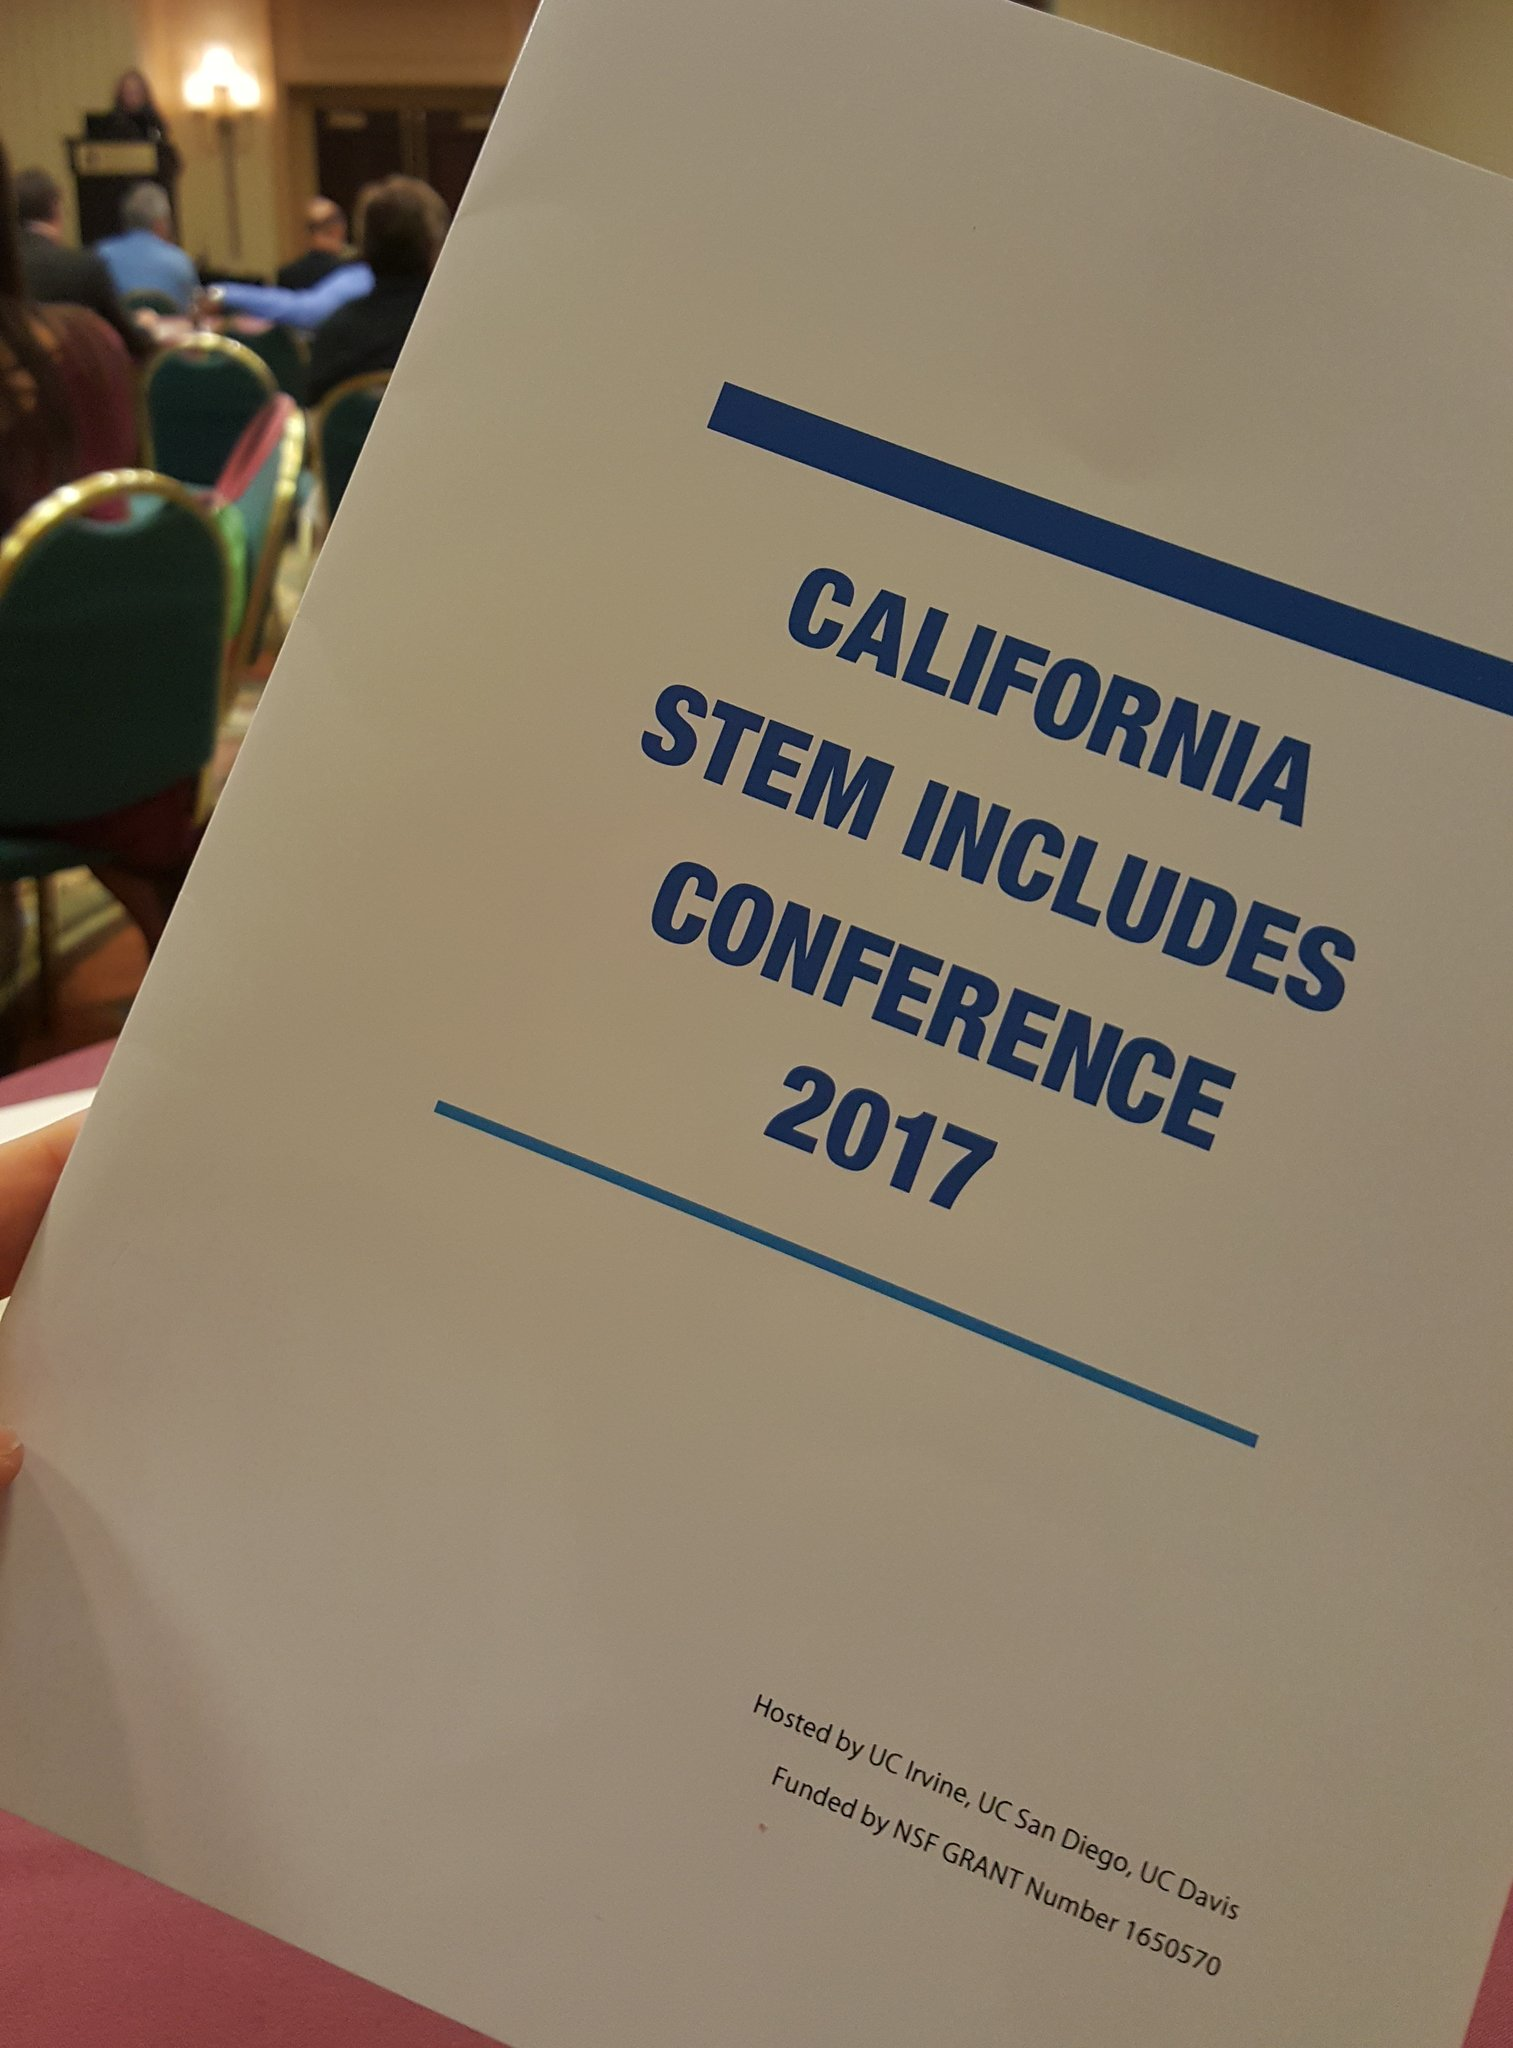 Simple advice from Sylvia Hurtado of @ucla: Make your institution's commitment to student success from top to bottom. #csic17 #STEM https://t.co/TSABabz9Vo